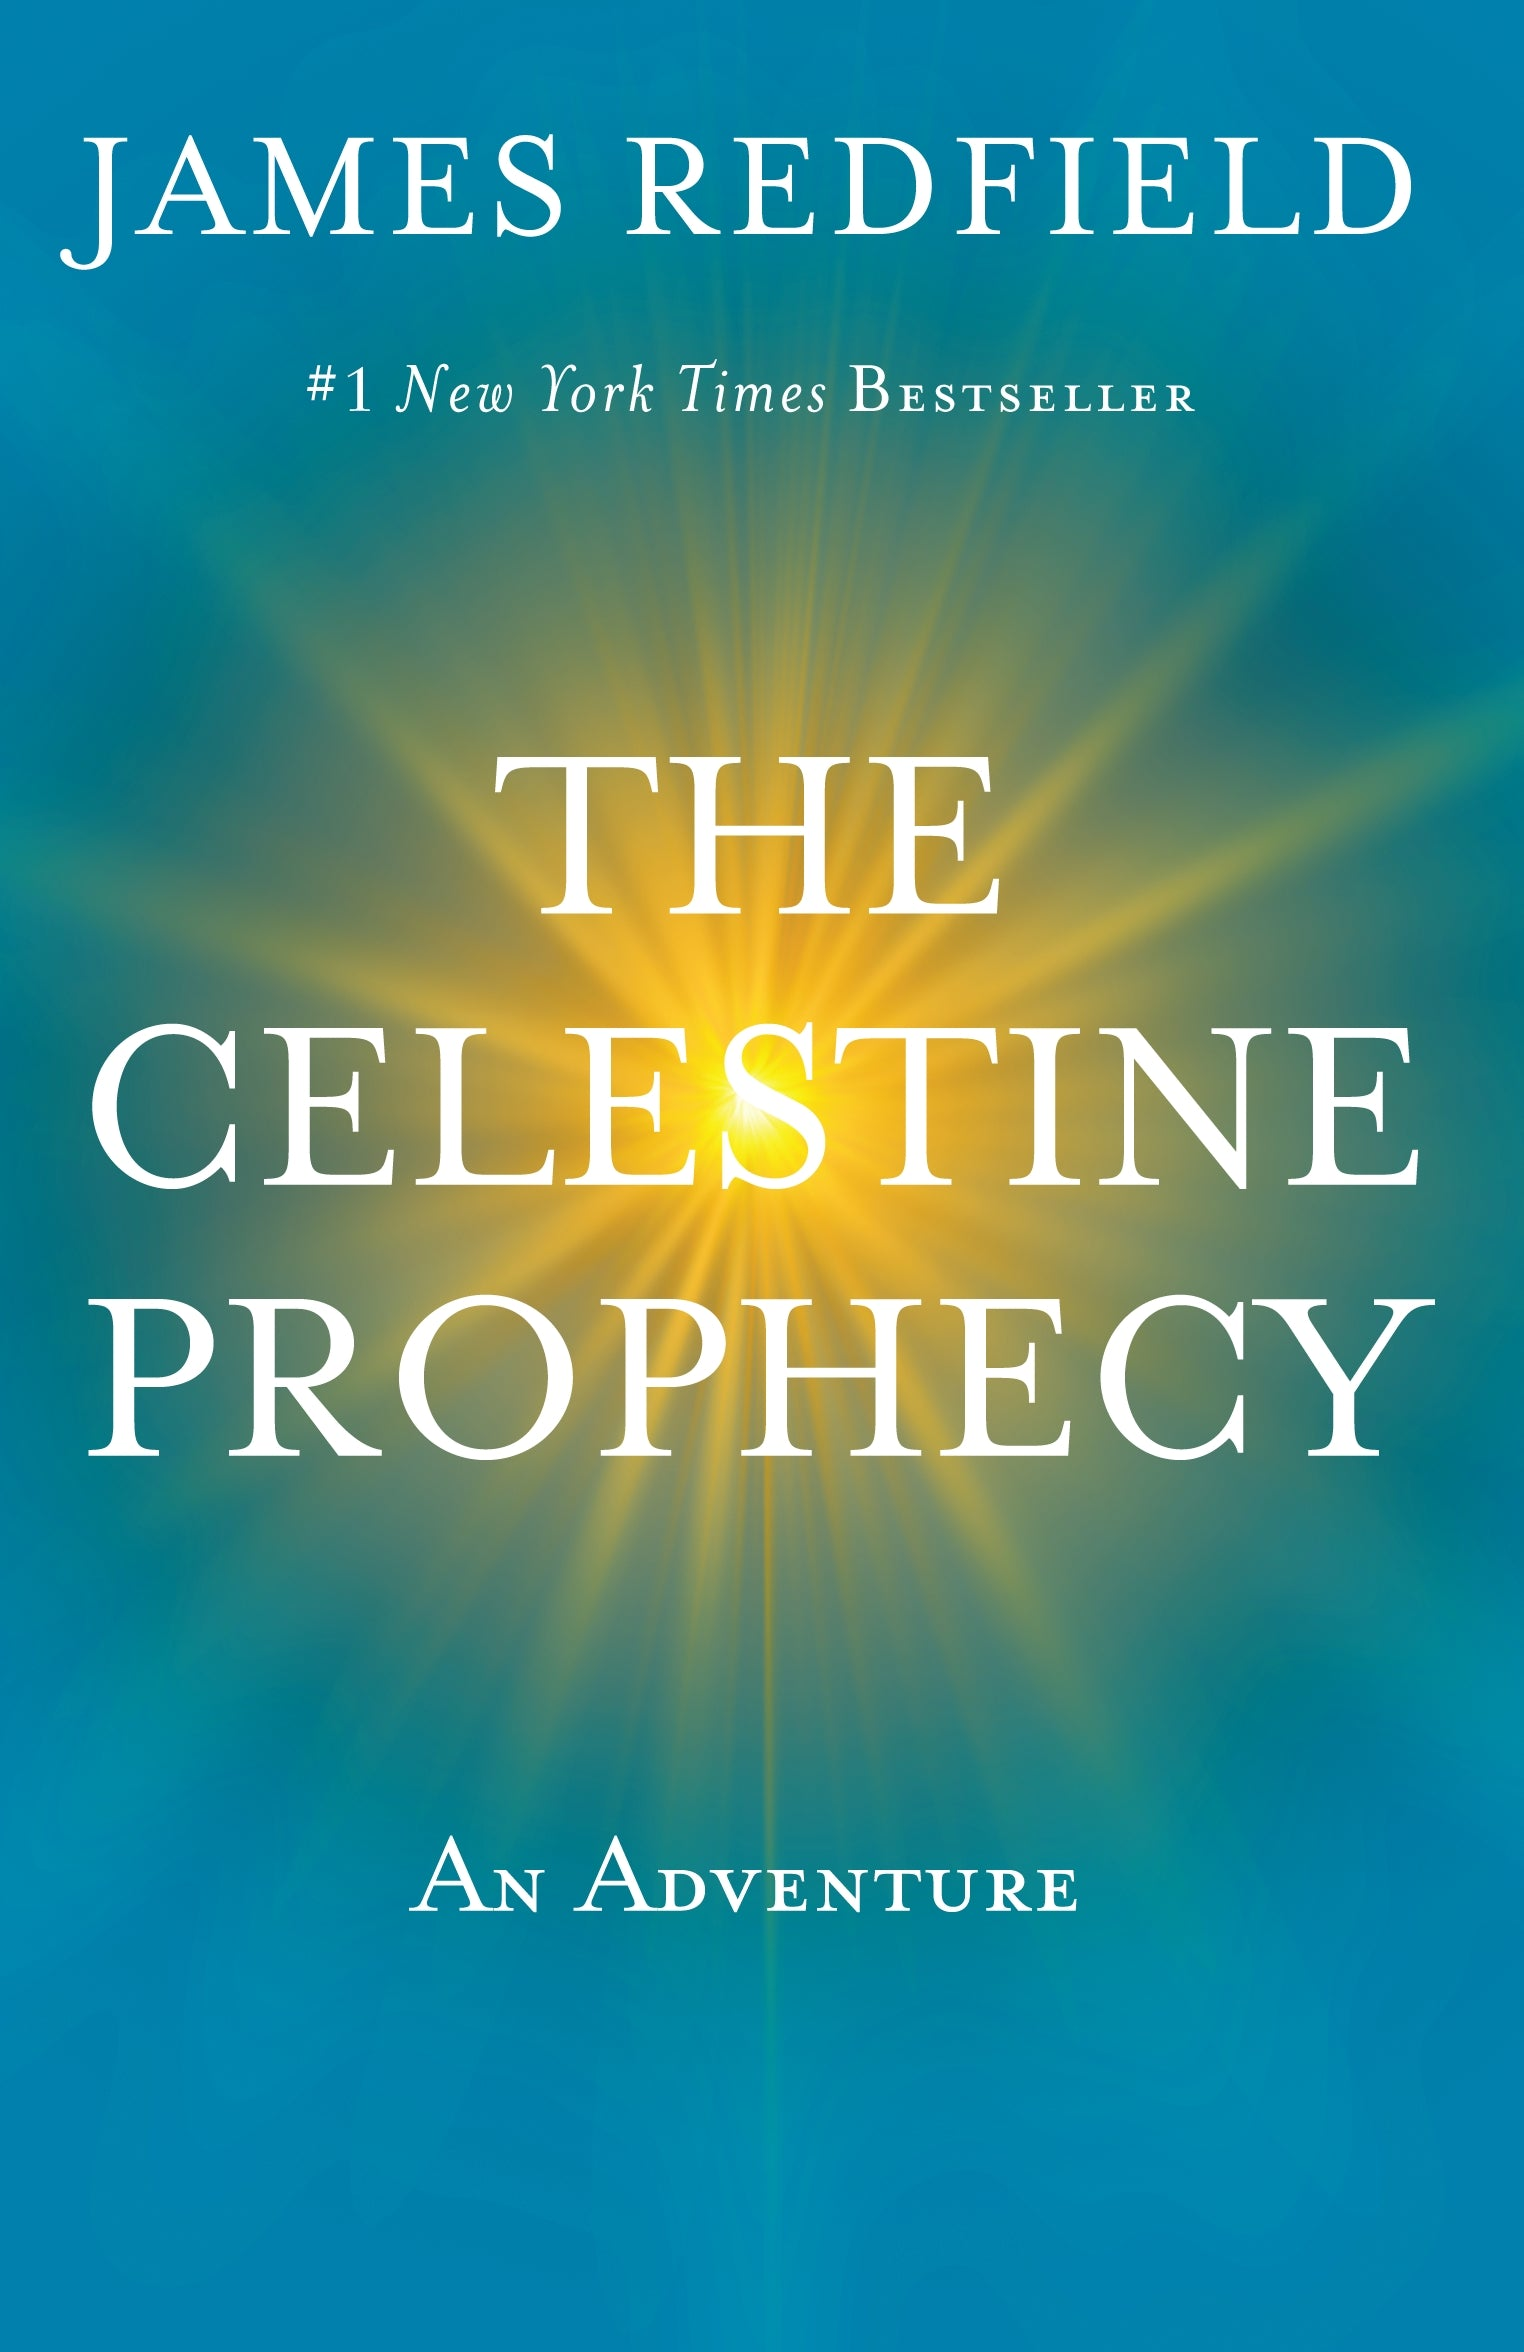 The Celestine Prophecy, An Adventure; James Redfield